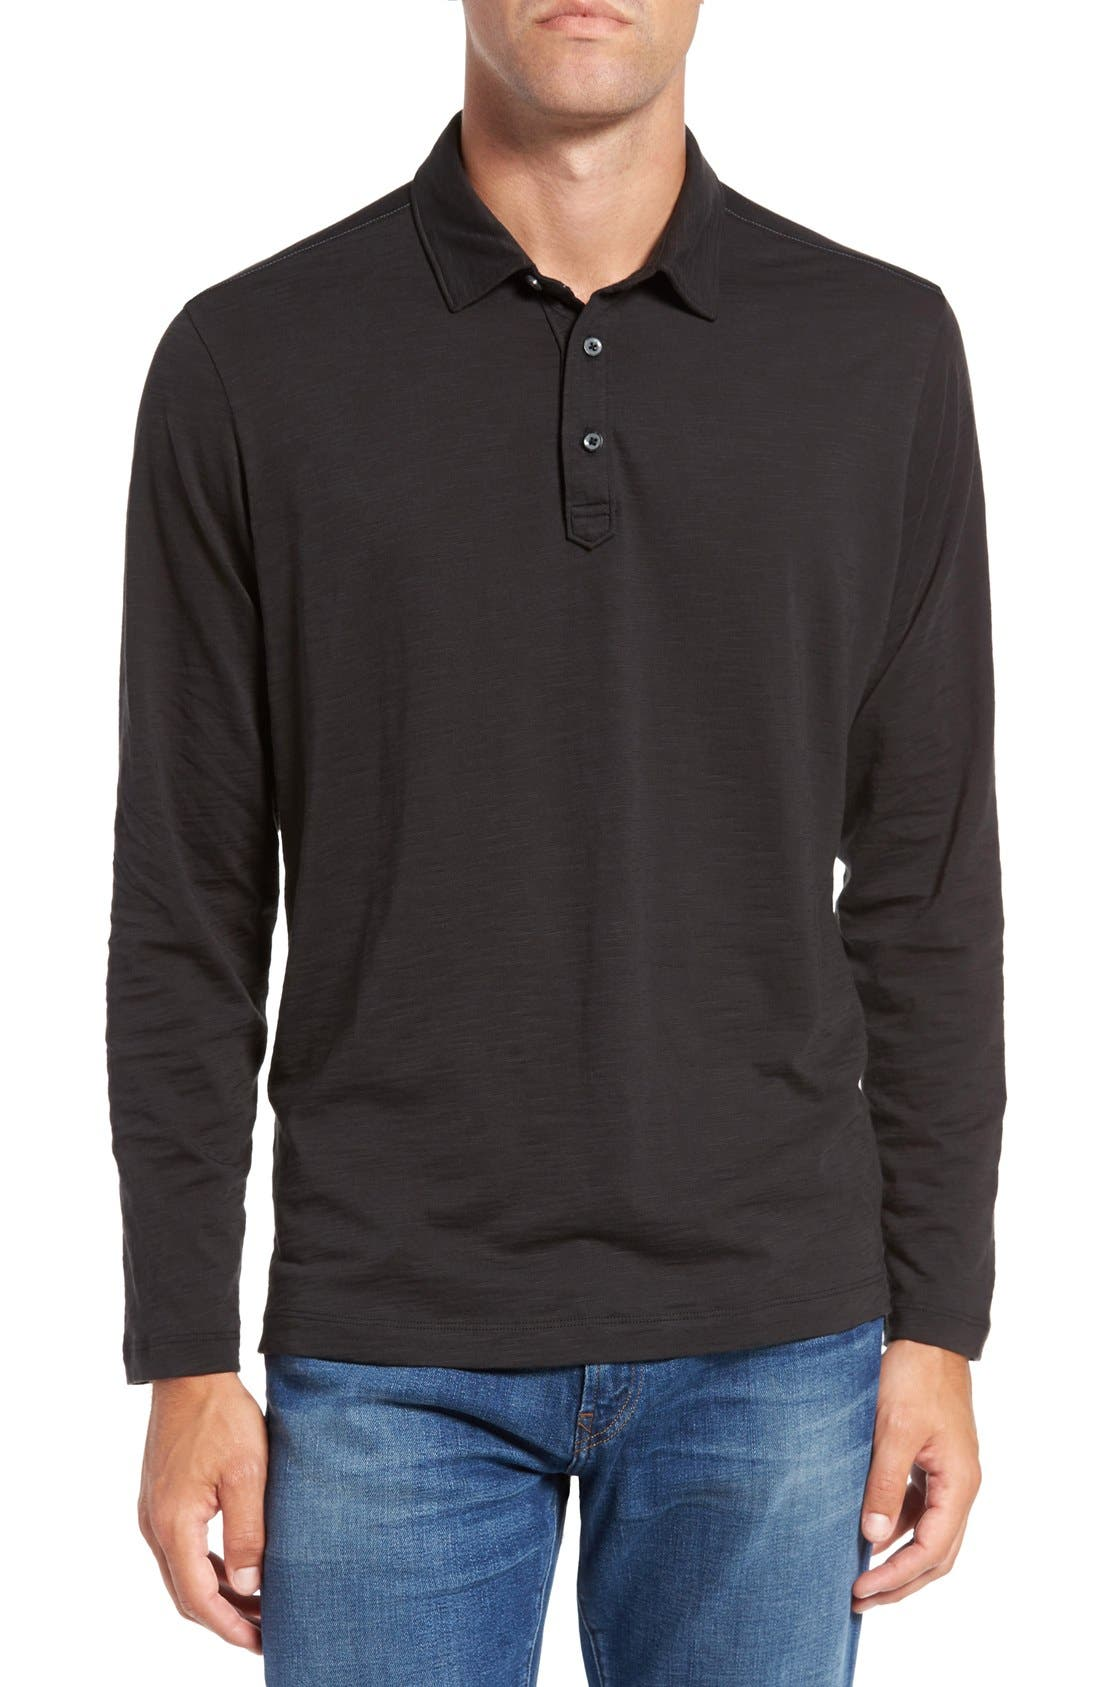 Alternate Image 1 Selected - Tommy Bahama 'Portside Player Spectator' Long Sleeve Jersey Polo